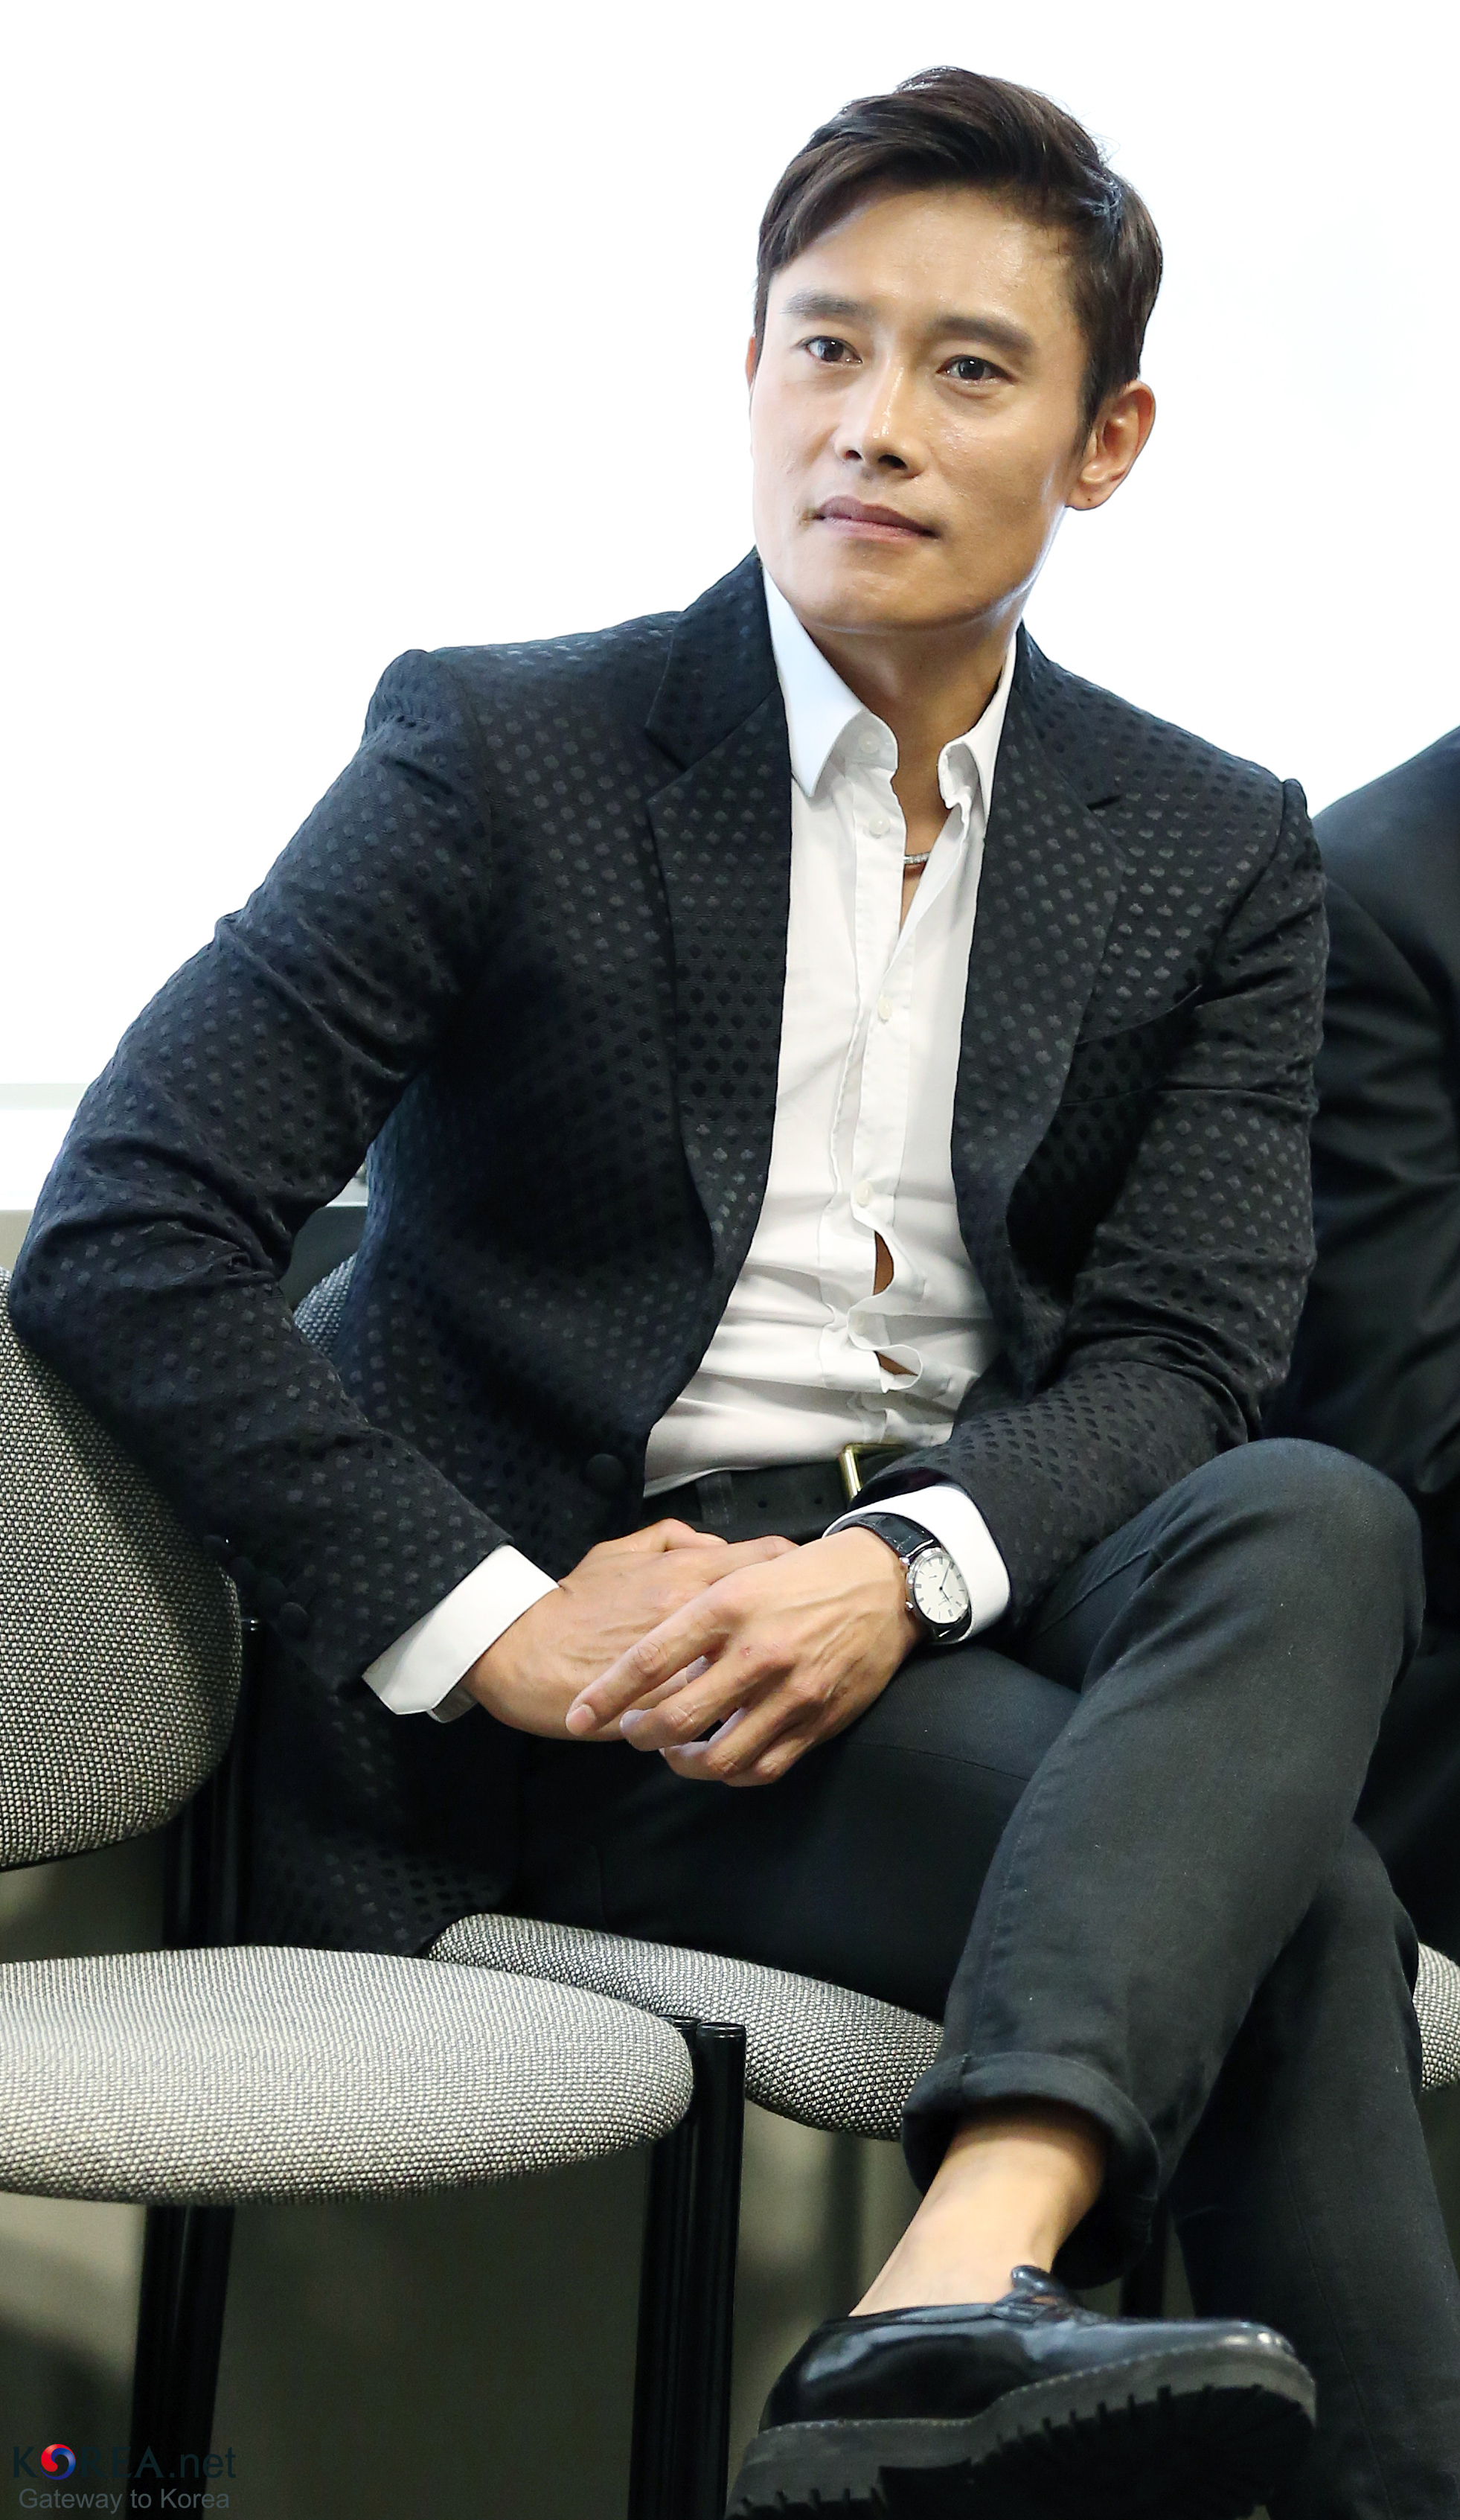 Byung hun lee